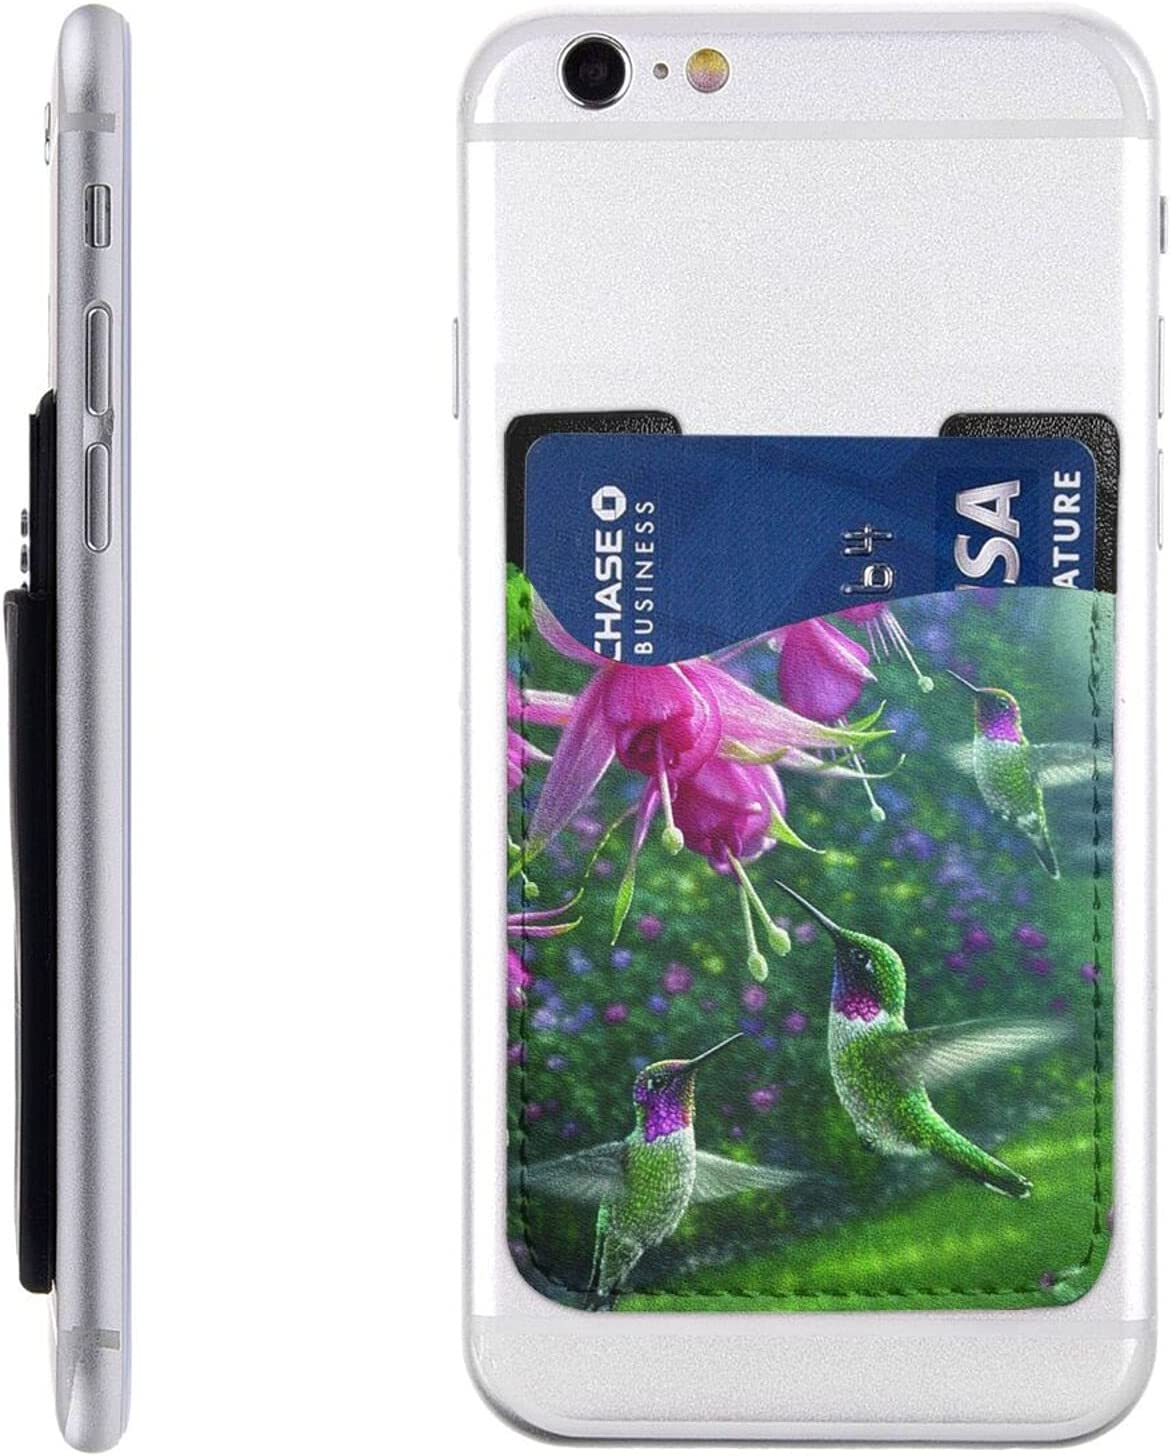 Heaven OFFicial site Hummingbird Phone Card Holder Cell Stick On Under blast sales Wa